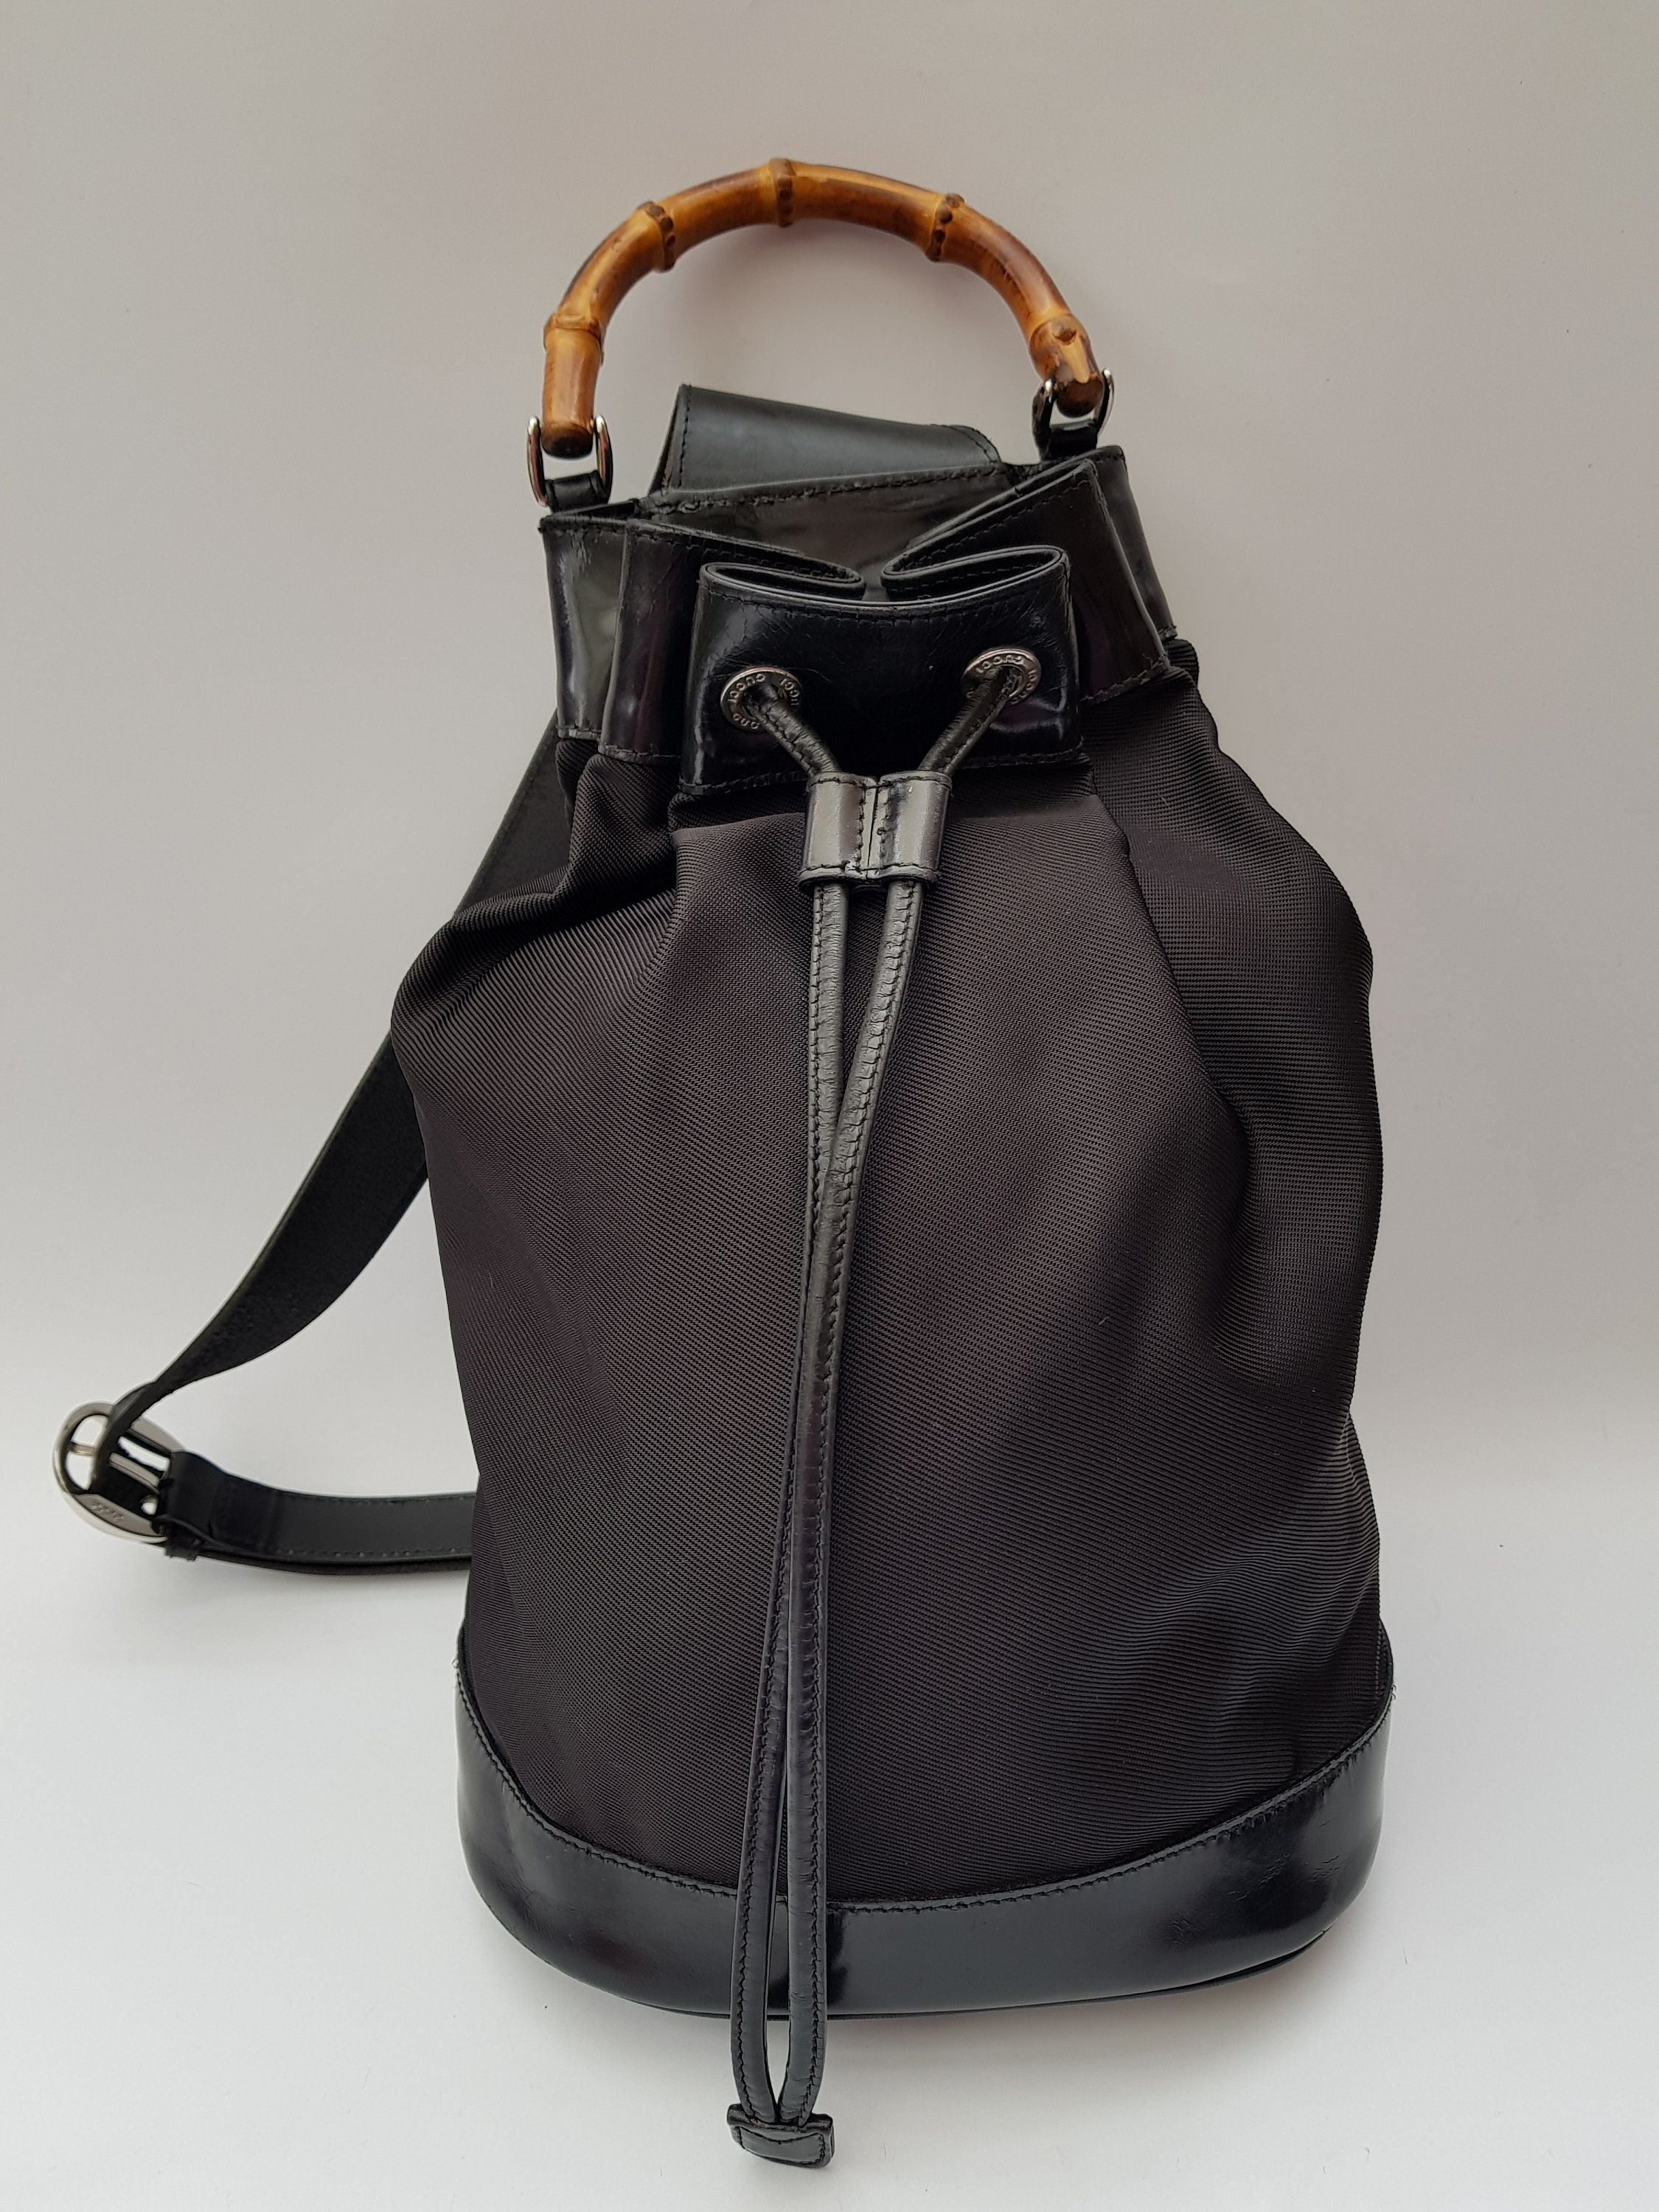 67f87ede072 GUCCI Backpack. Gucci Bamboo Vintage Black Backpack